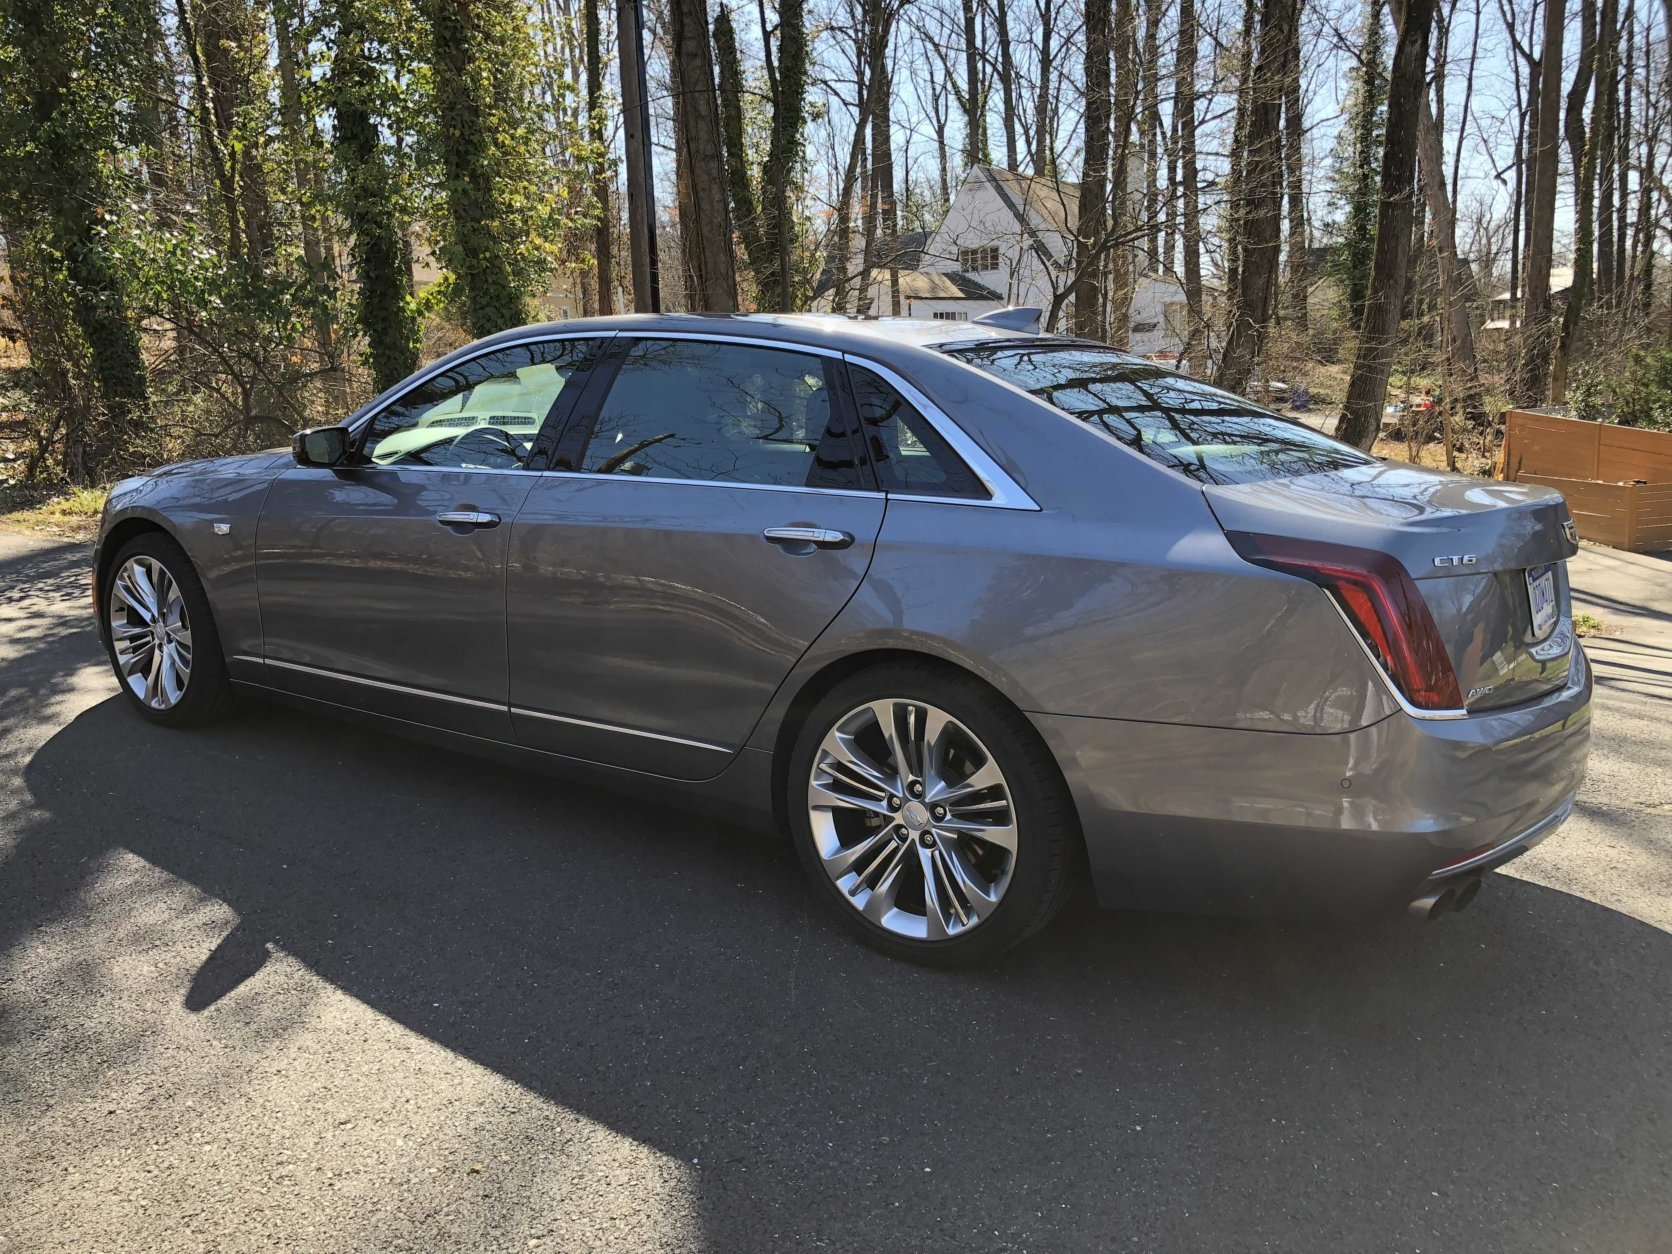 At just $88,000, the starting price is much lower than of some of the competition in its class. (WTOP/Mike Parris)